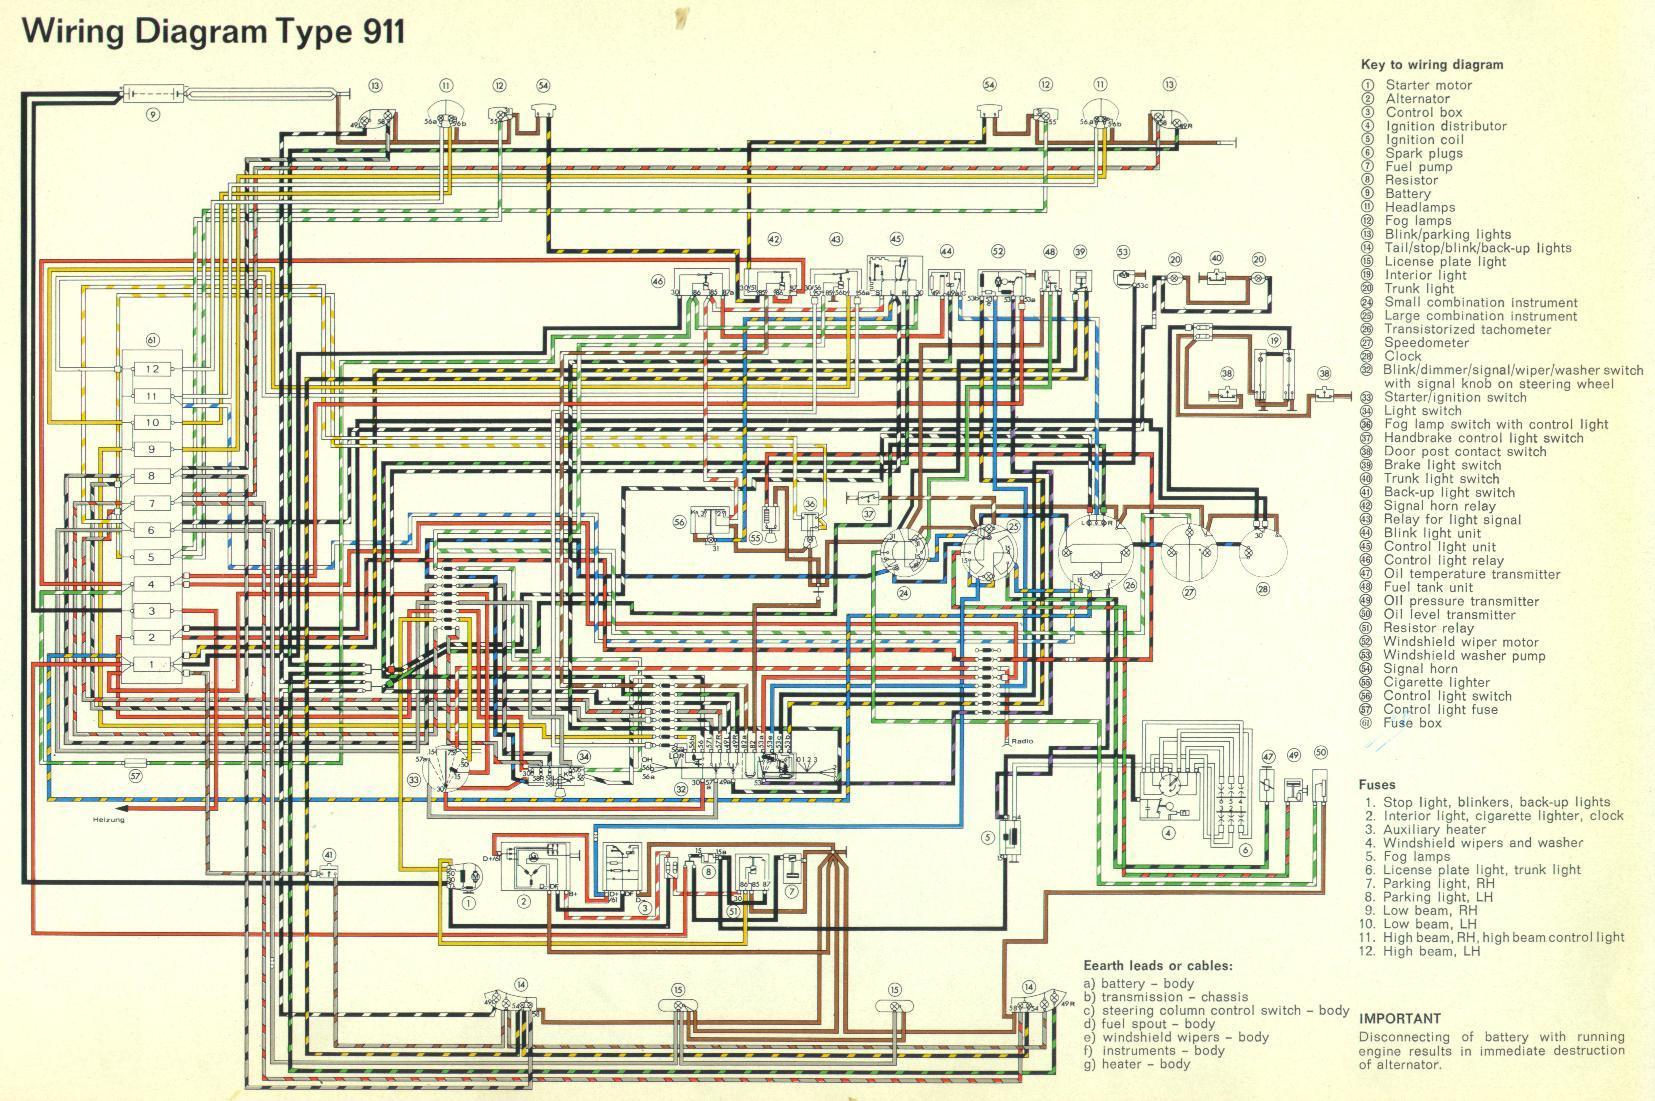 1967 Porsche 912 Wiring Diagram - wiring diagram installation-cover -  installation-cover.pennyapp.itPennyApp